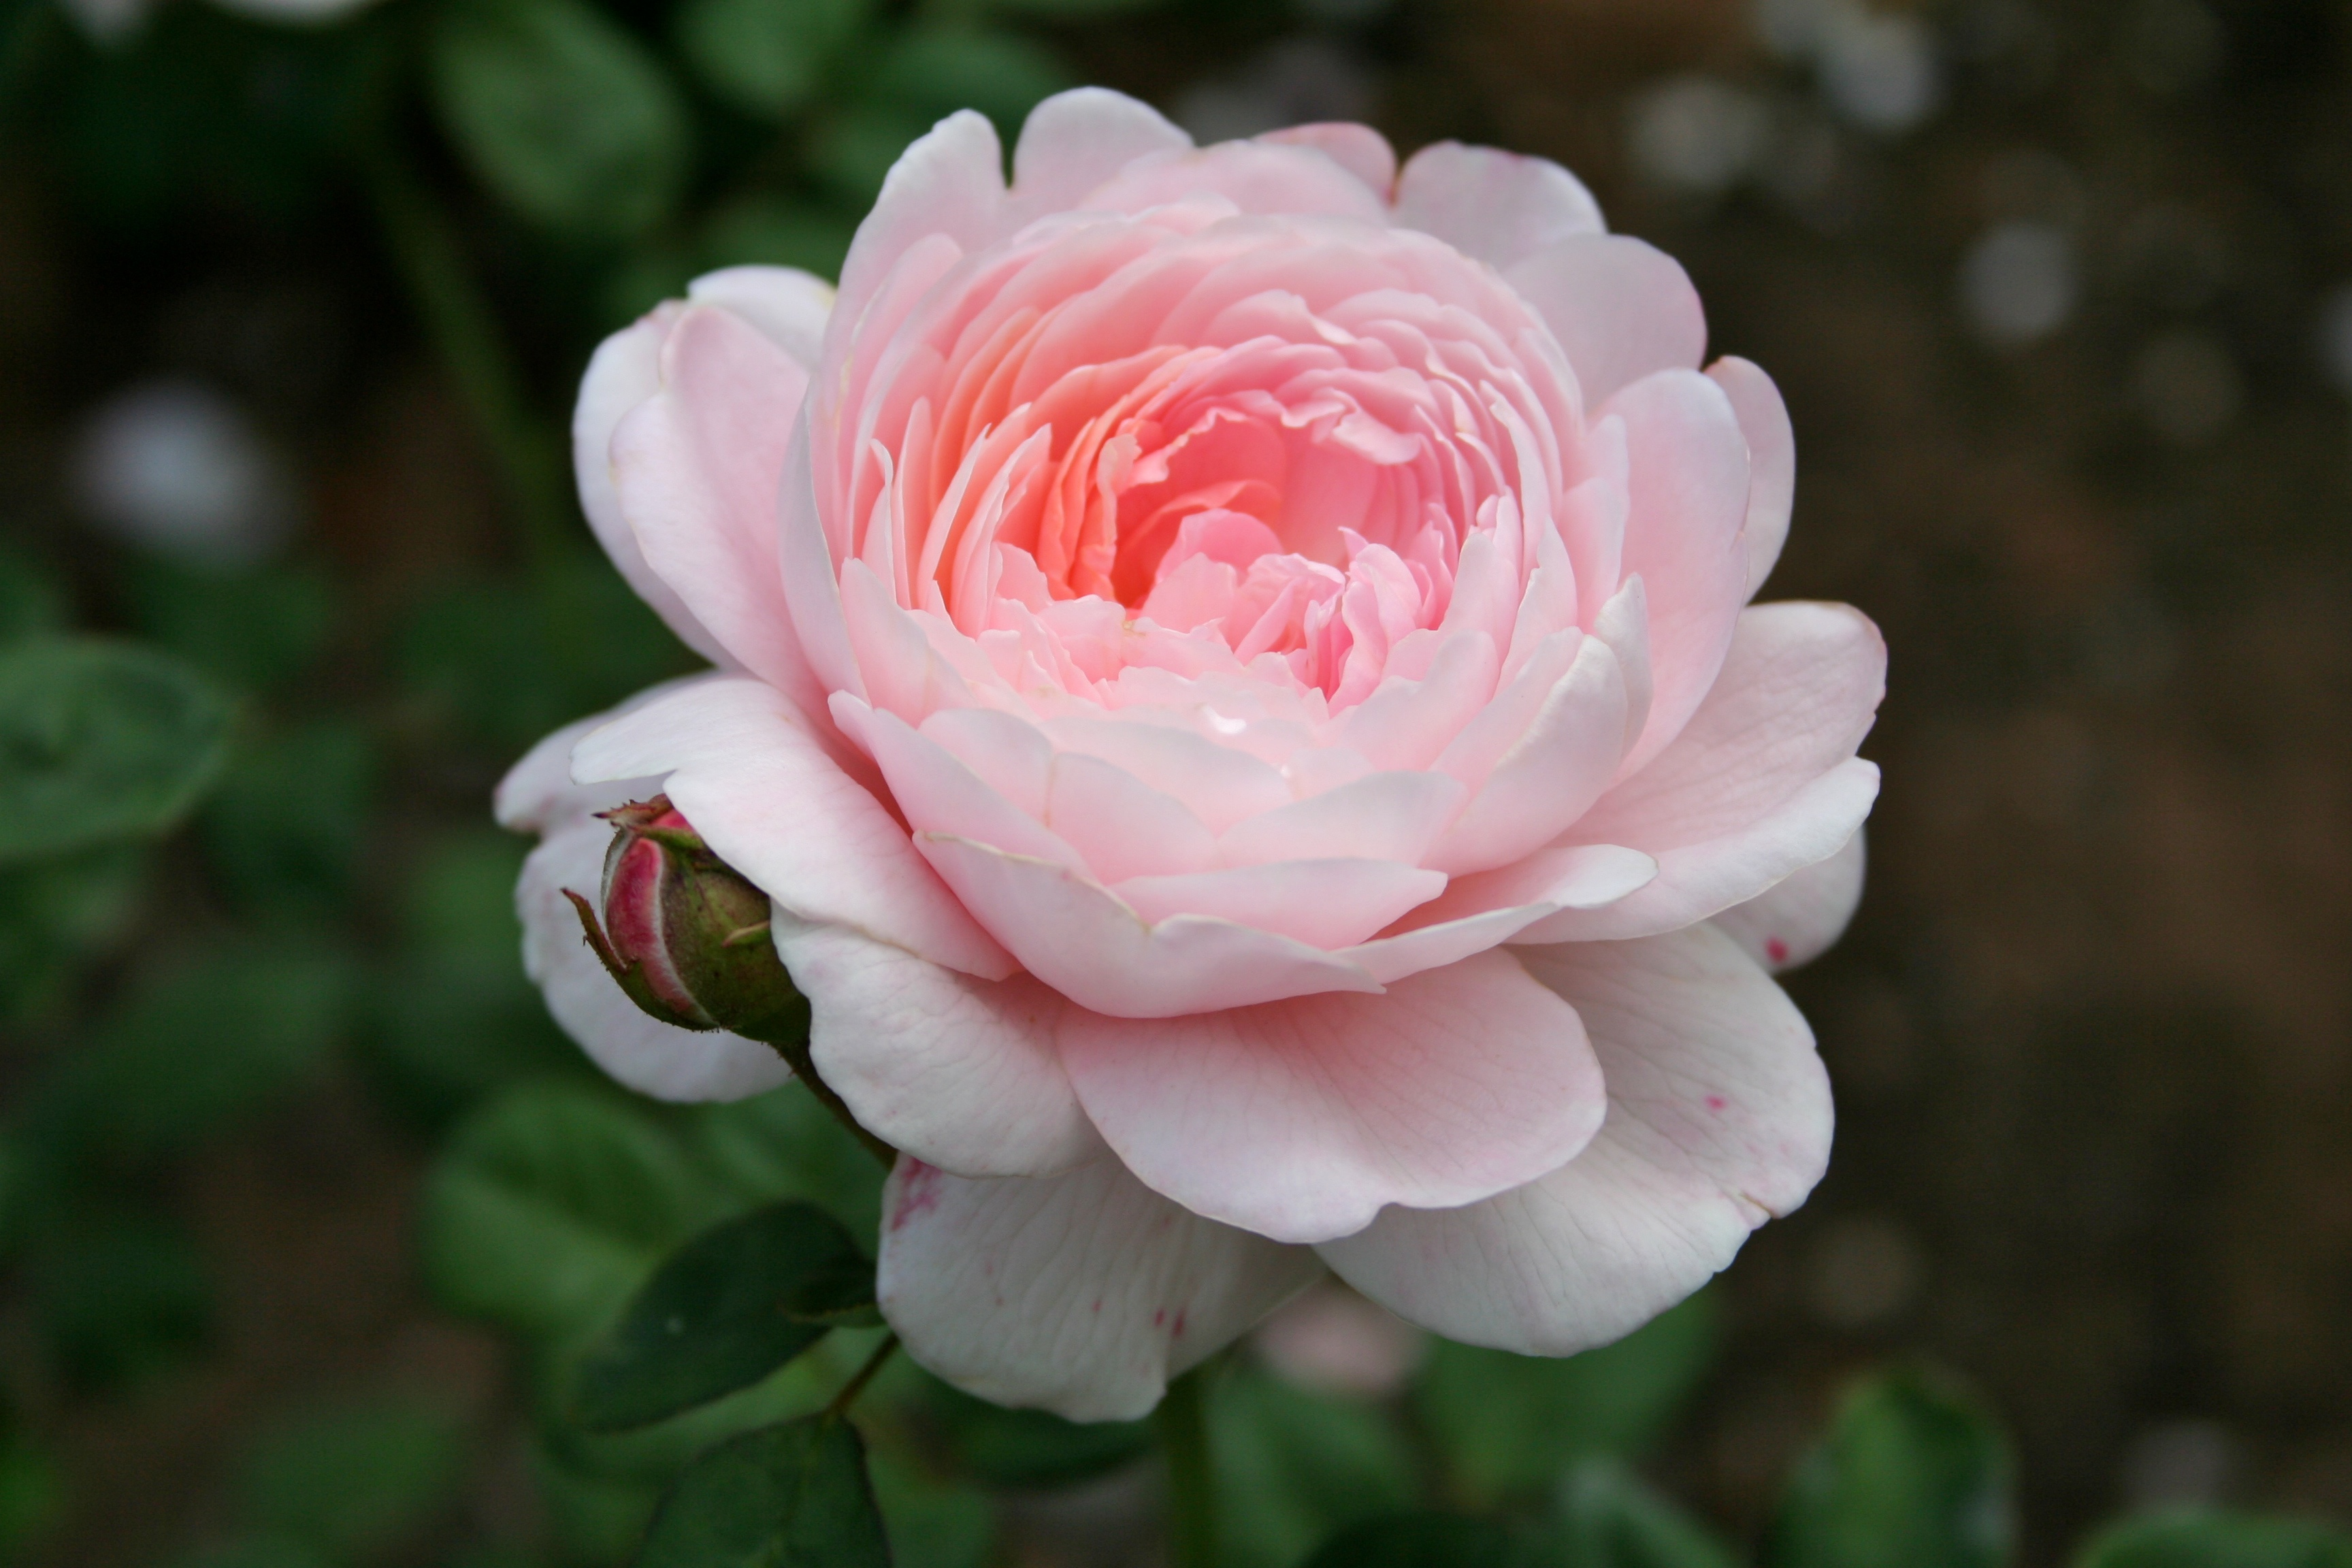 File:Pink rose 1.jpg - 1538.1KB